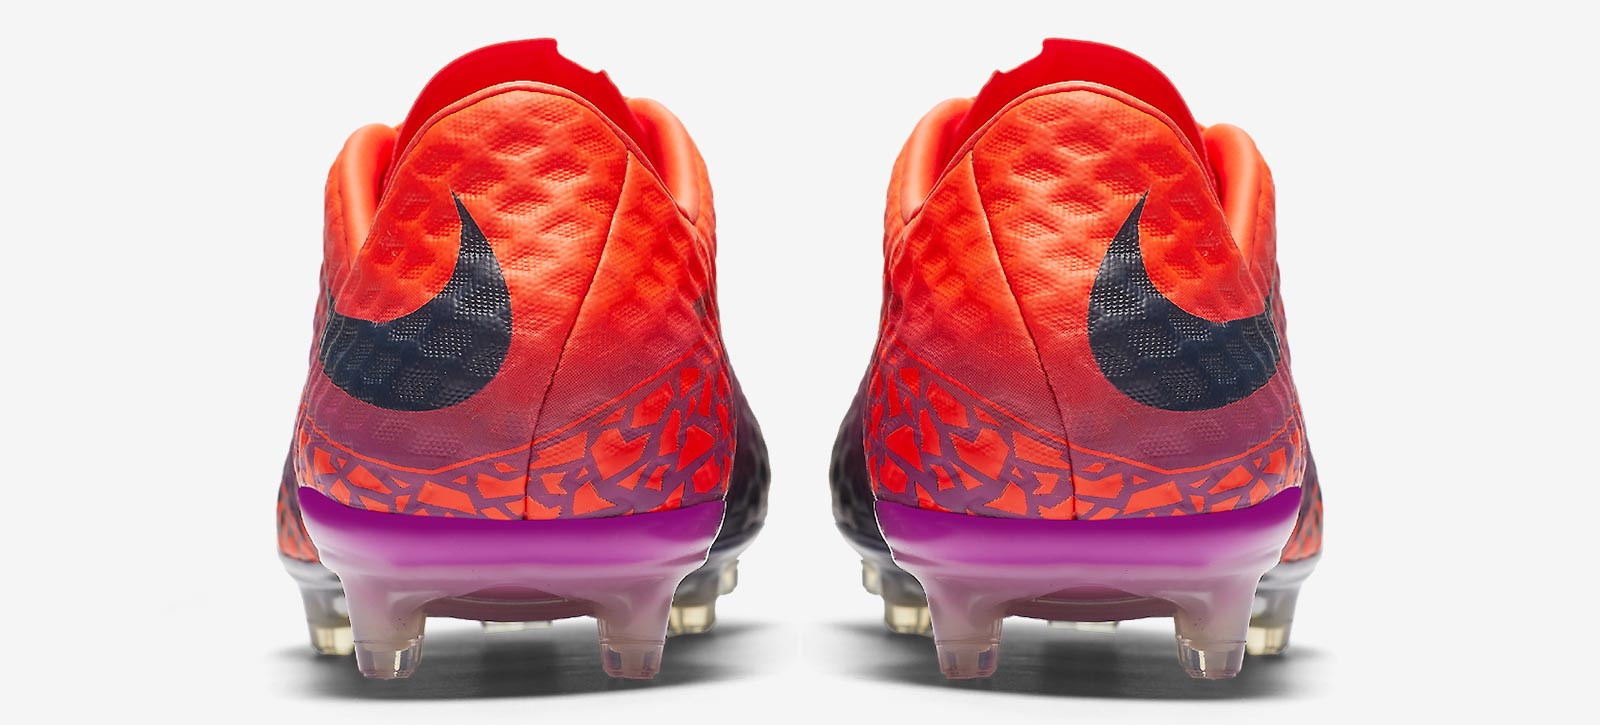 reputable site 7be5c 5a472 Floodlights Pack Nike Hypervenom Phinish 2016-2017 Boots Released - Footy  Headlines